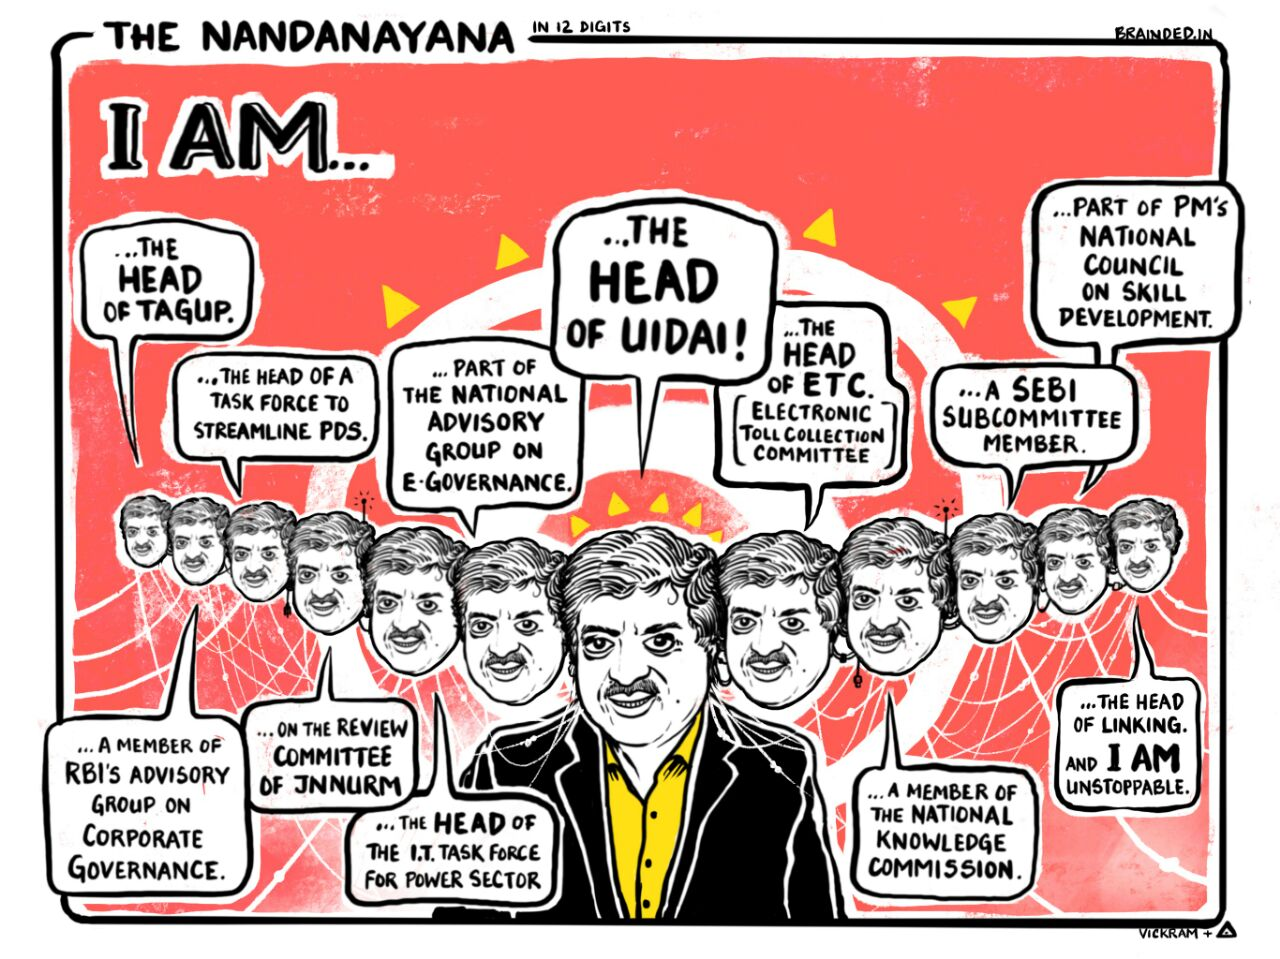 The many faces of Nandan Nilekani